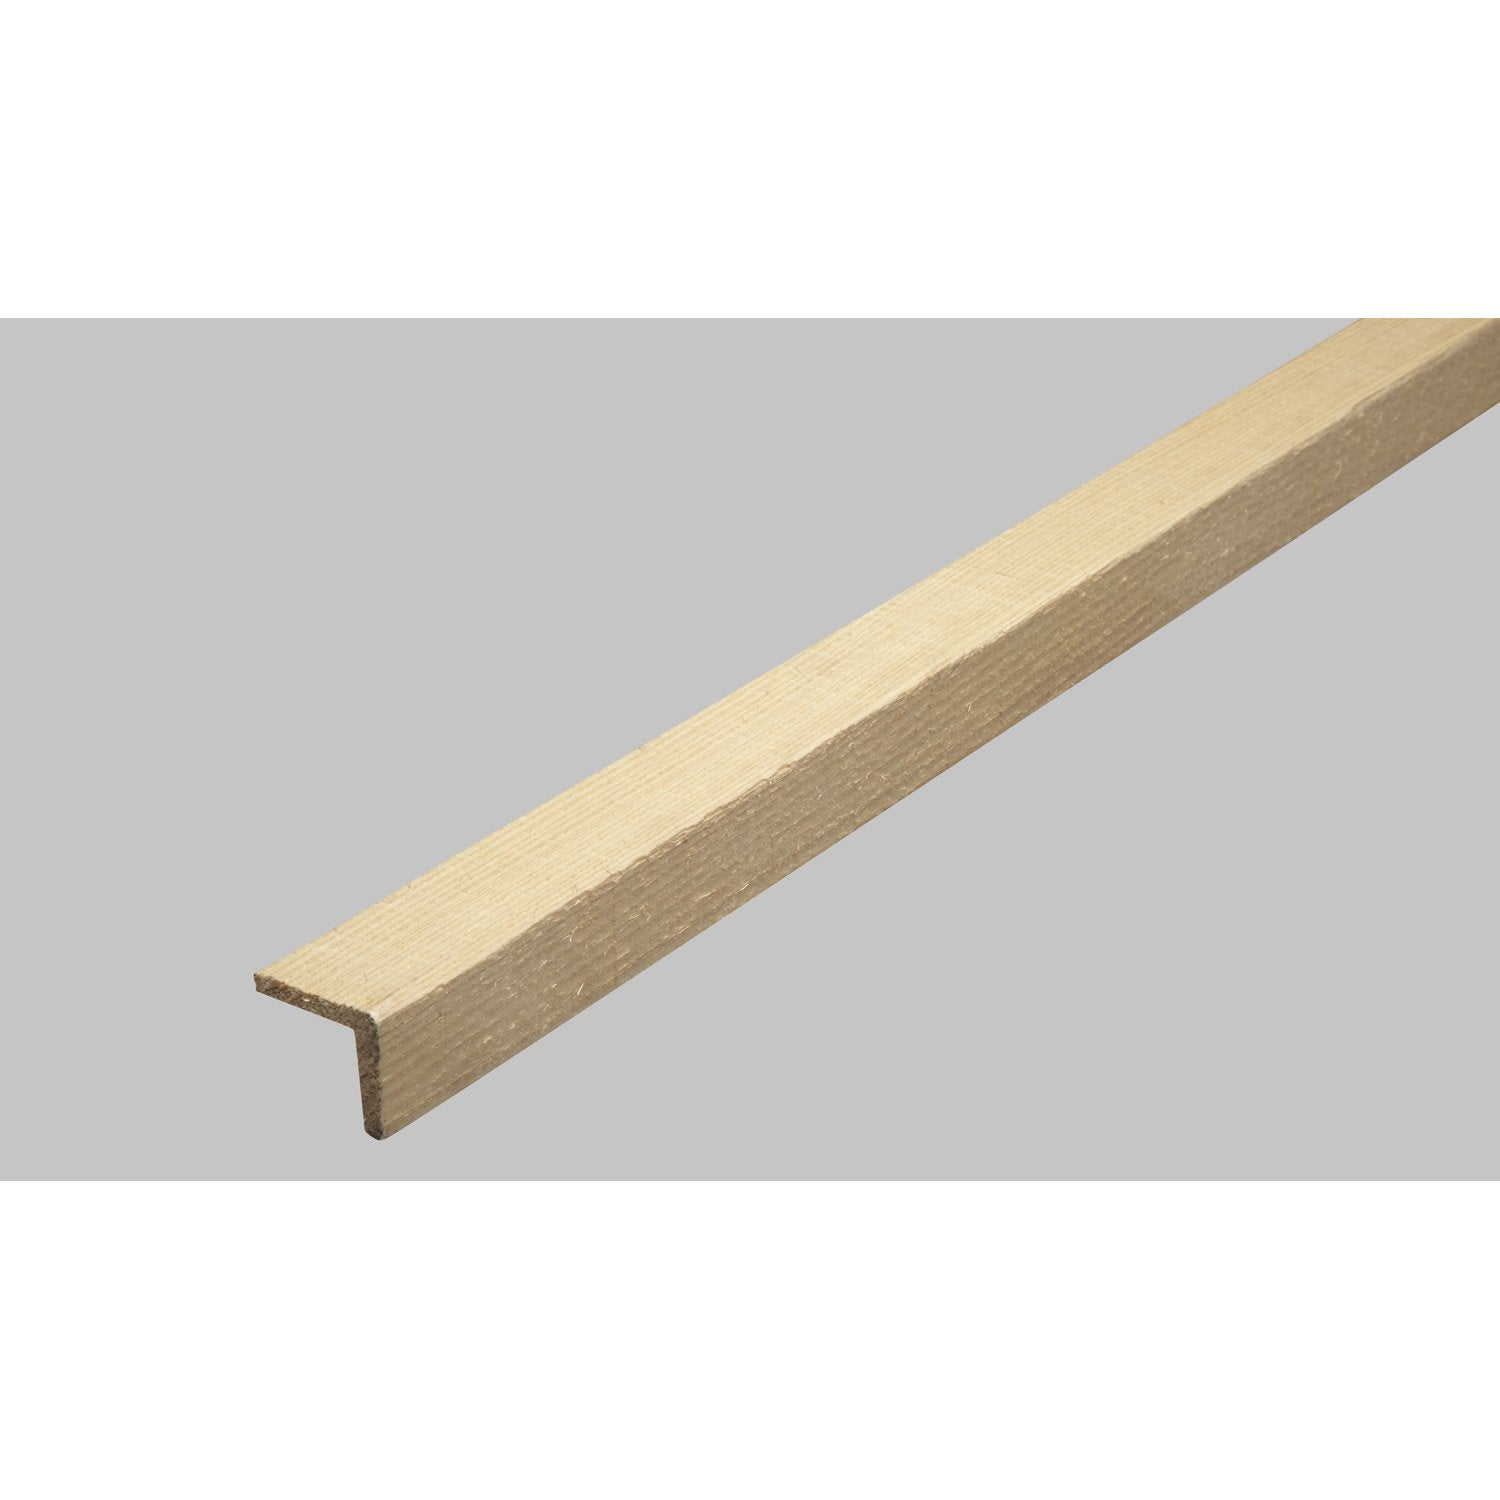 Baguette d 39 angle en sapin long 250cm section for Baguette finition carrelage sol